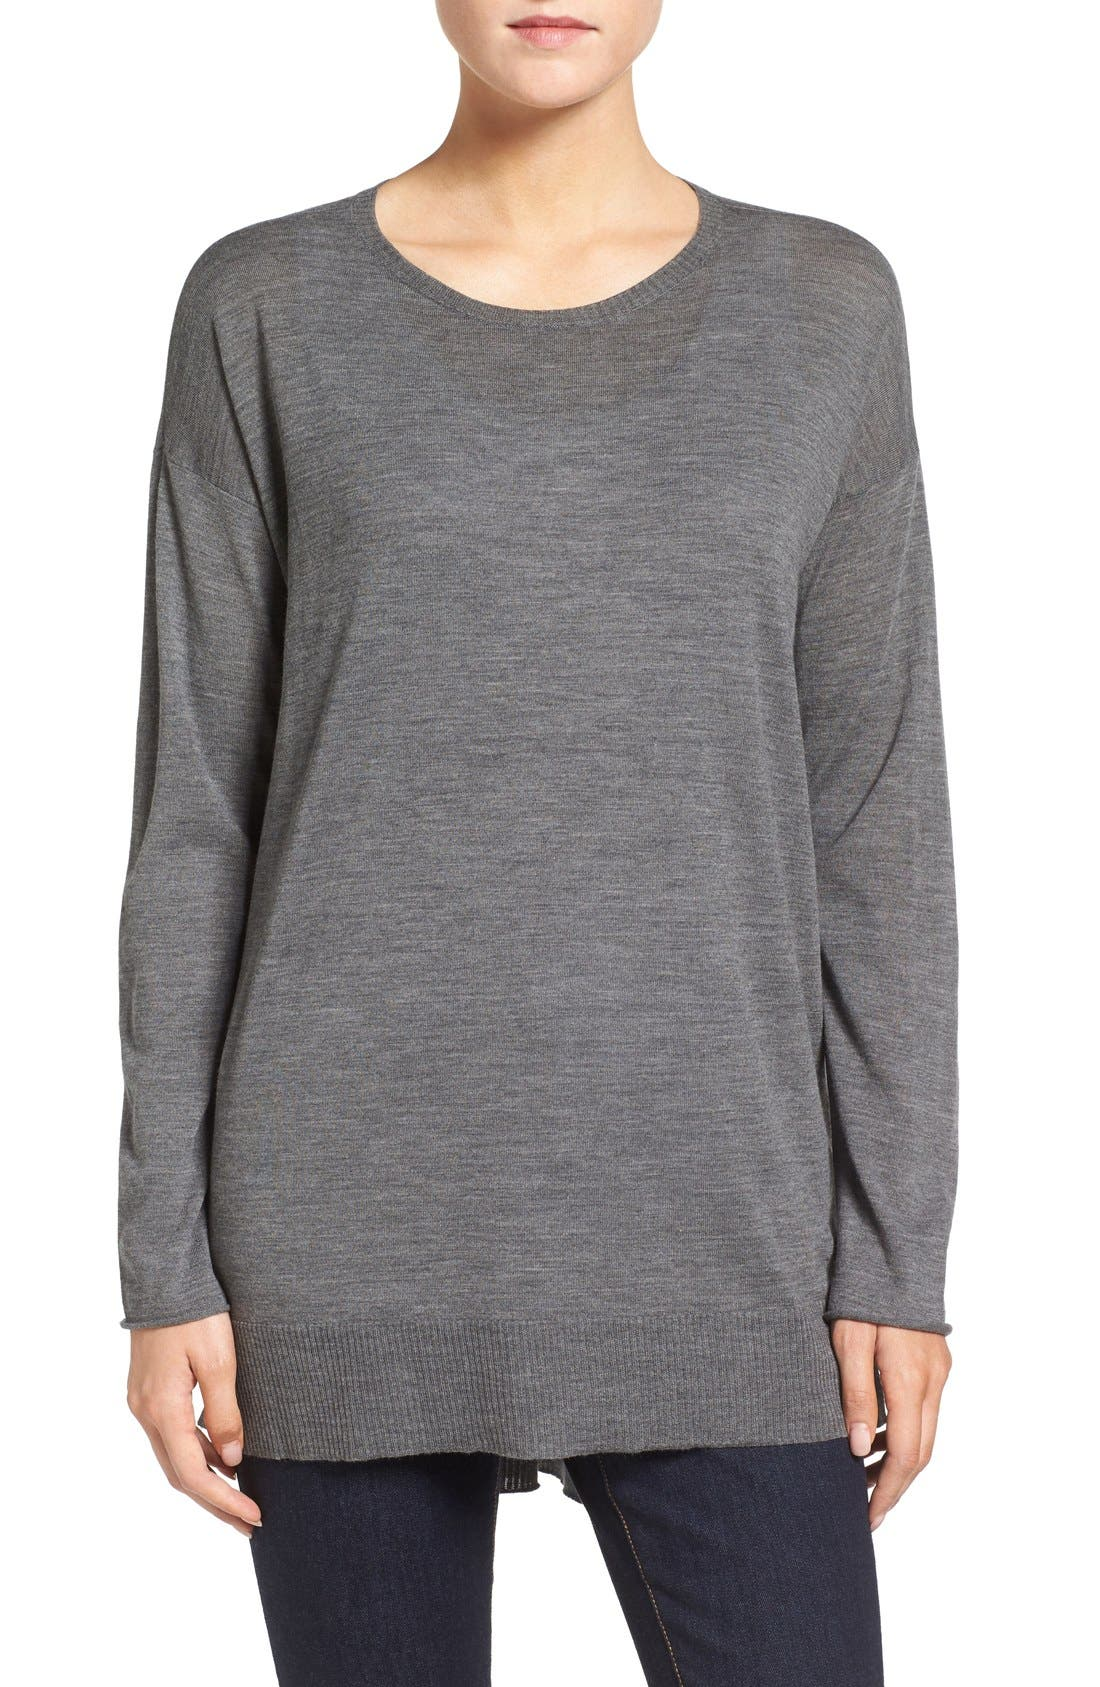 Alternate Image 1 Selected - Eileen Fisher Featherweight Merino Wool Crewneck Sweater